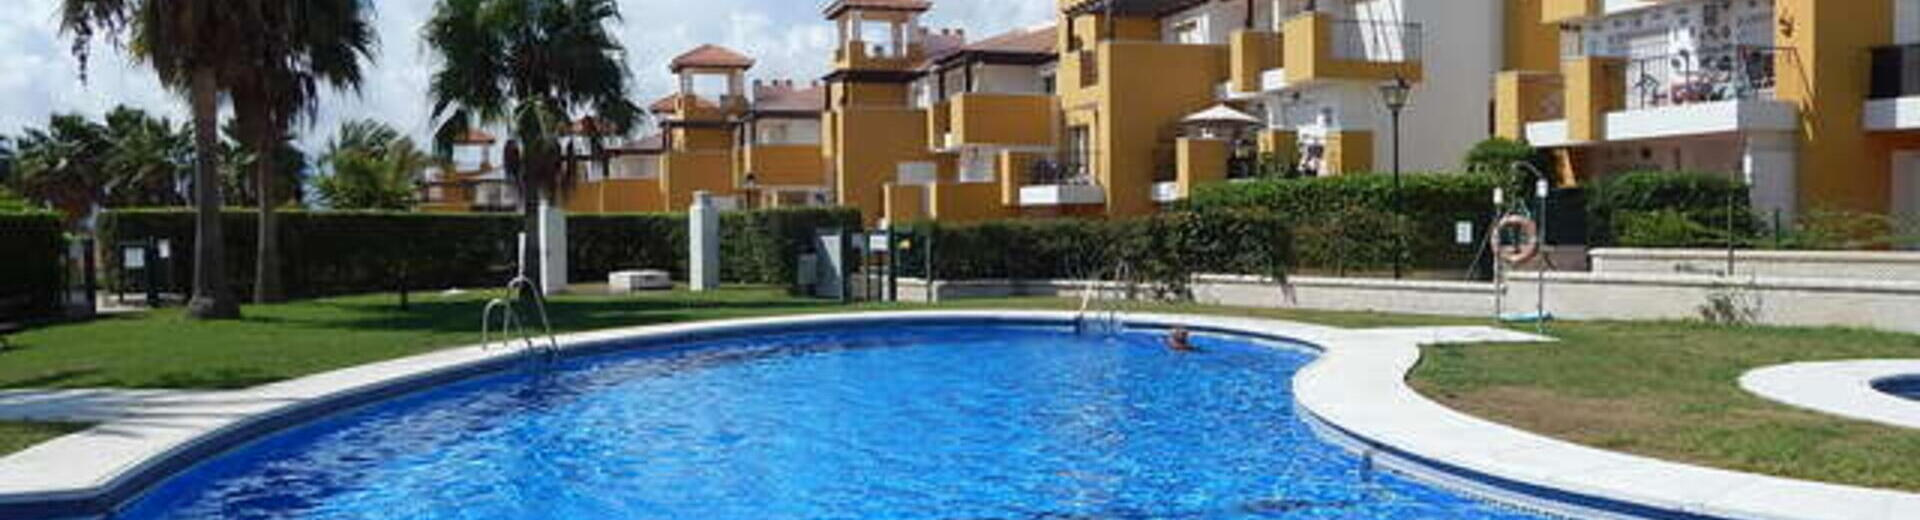 VIP7524: Apartment for Sale